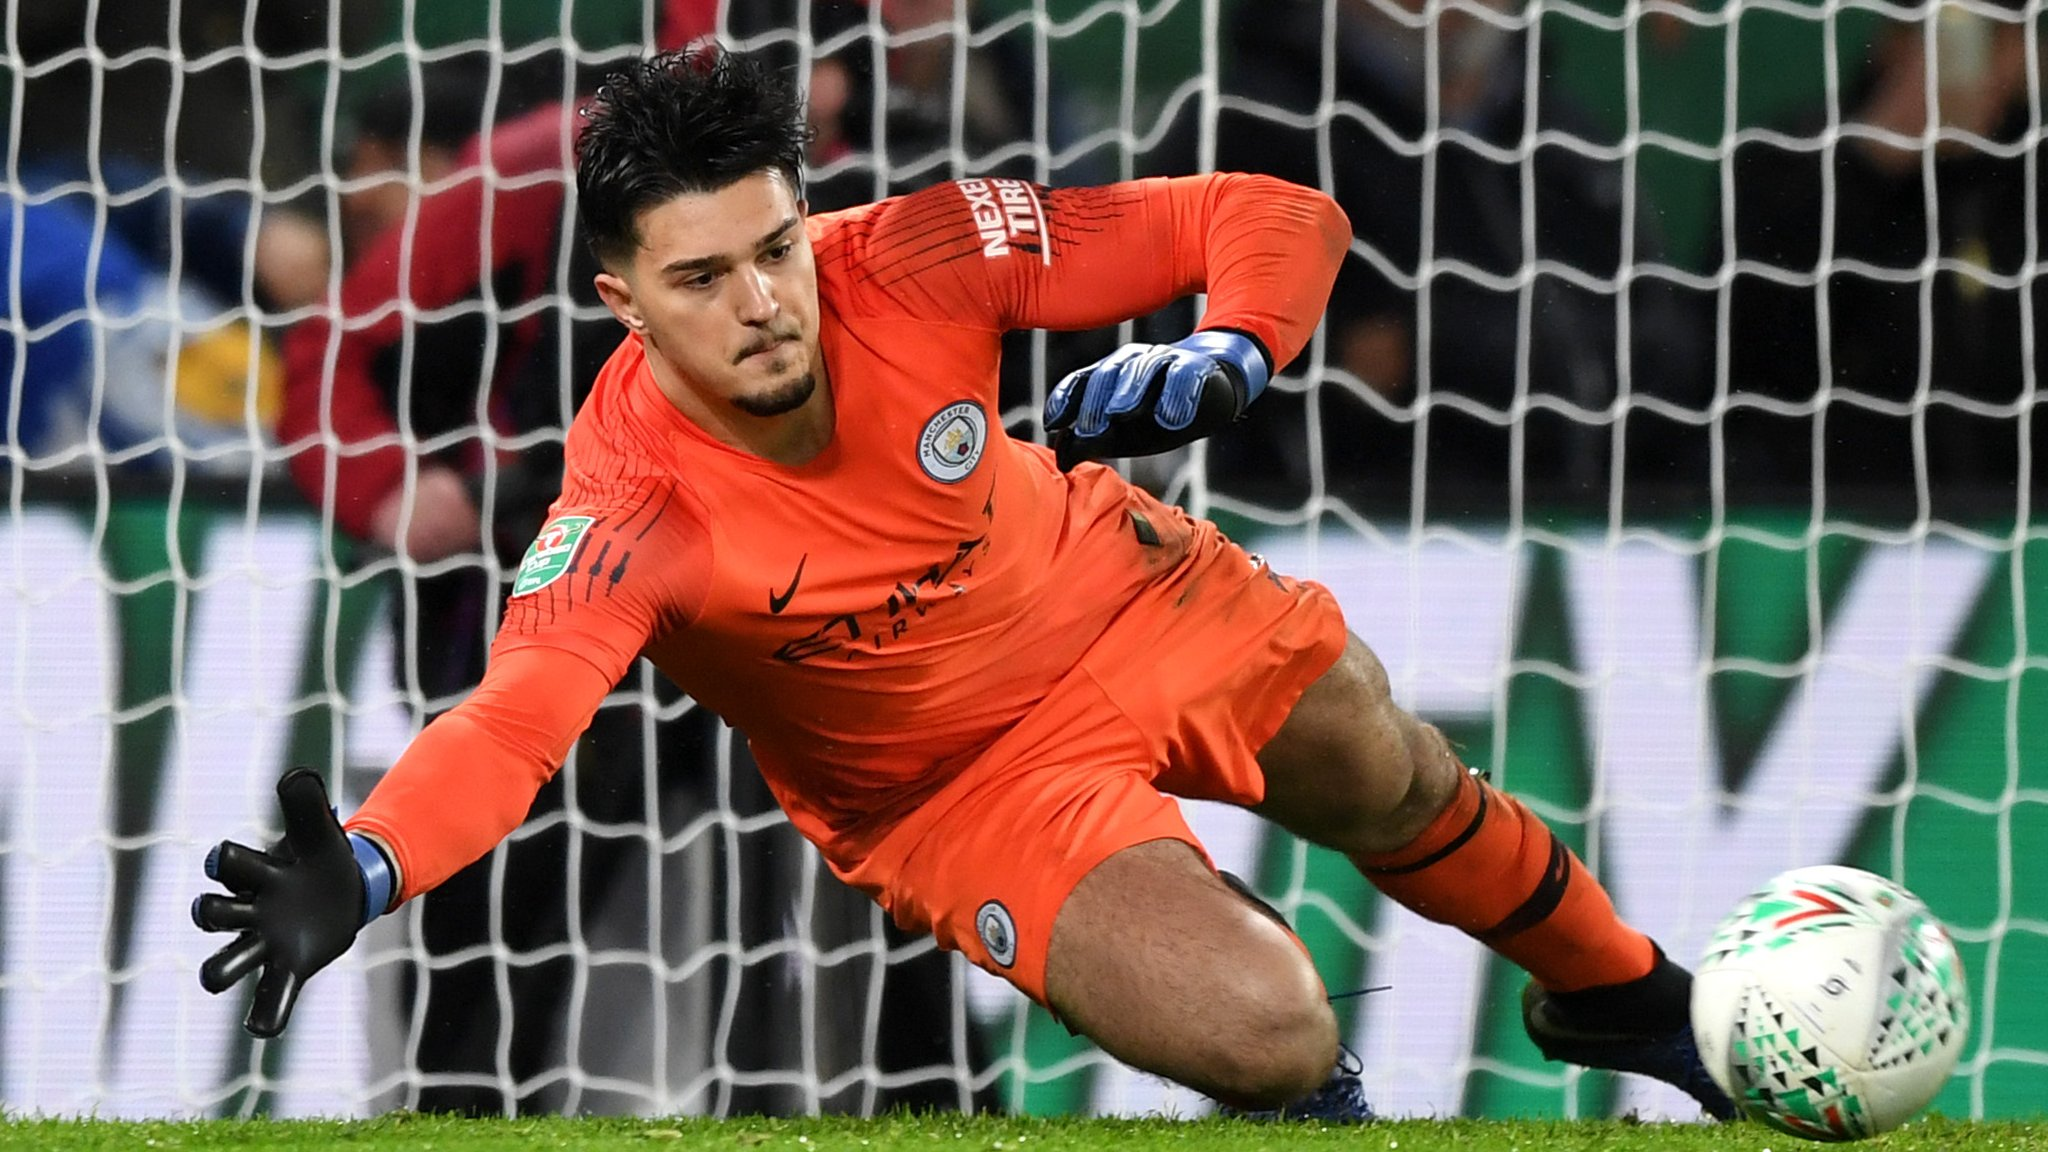 Man City beat Leicester on penalties to reach semi-final